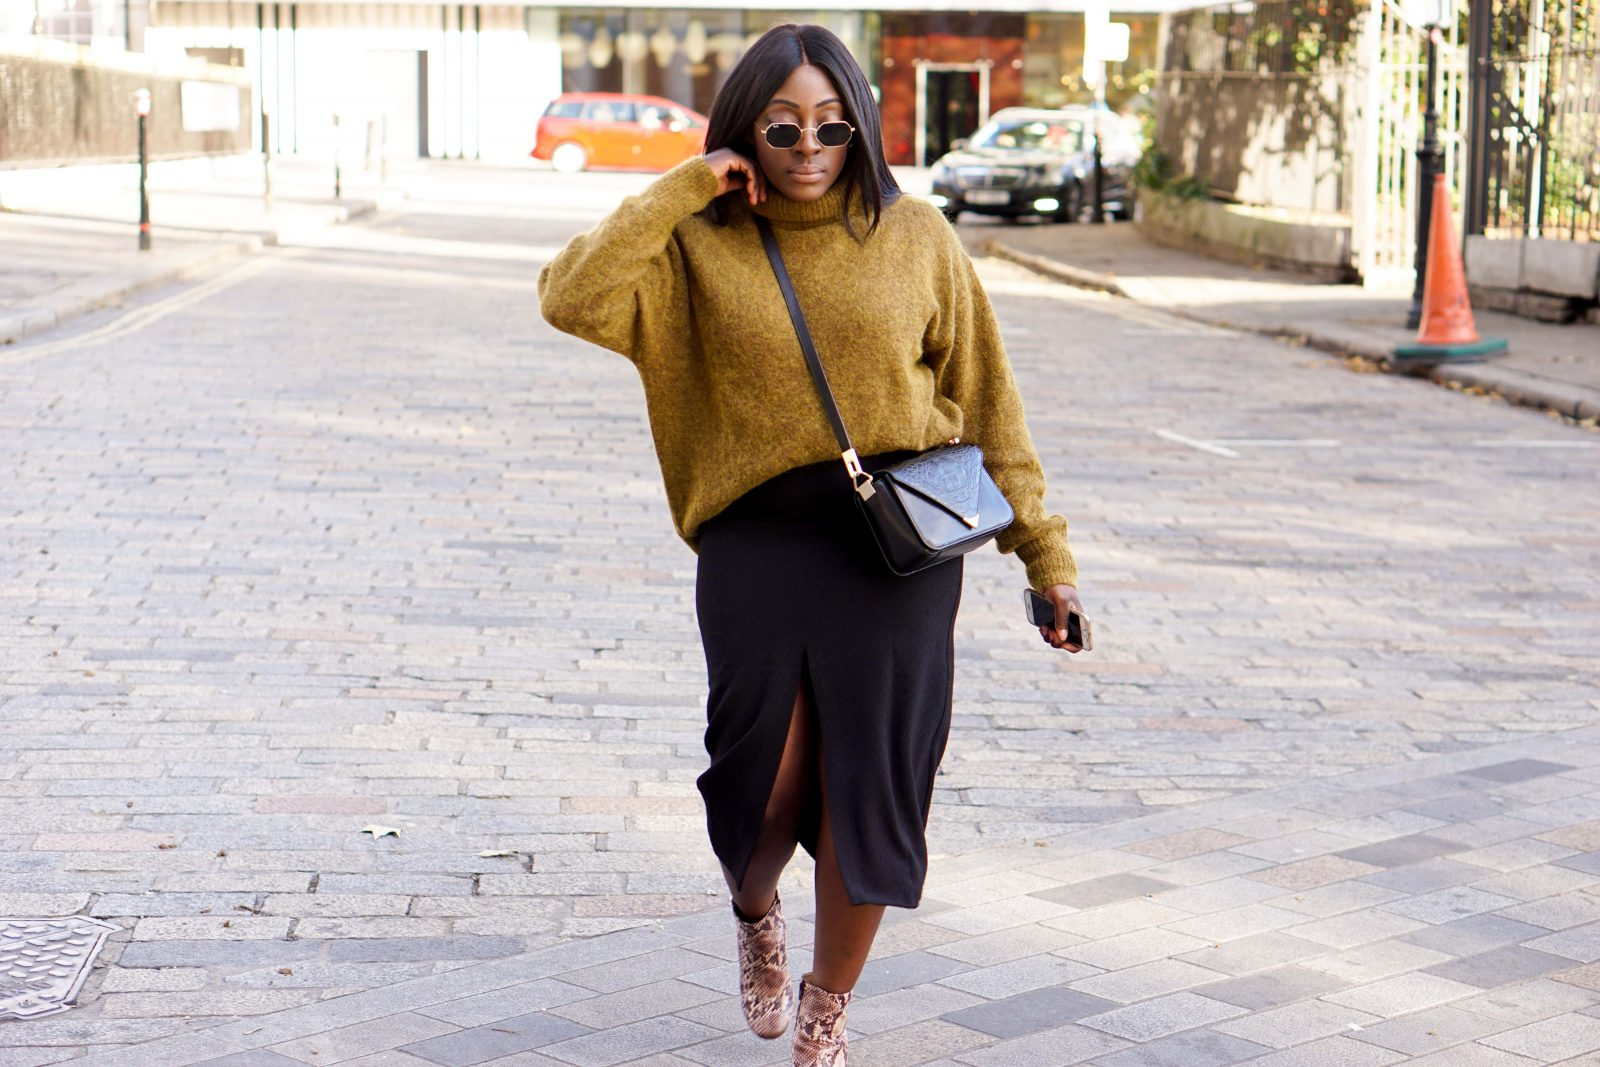 Roll Neck Chic in November 2 - Style and the Sass